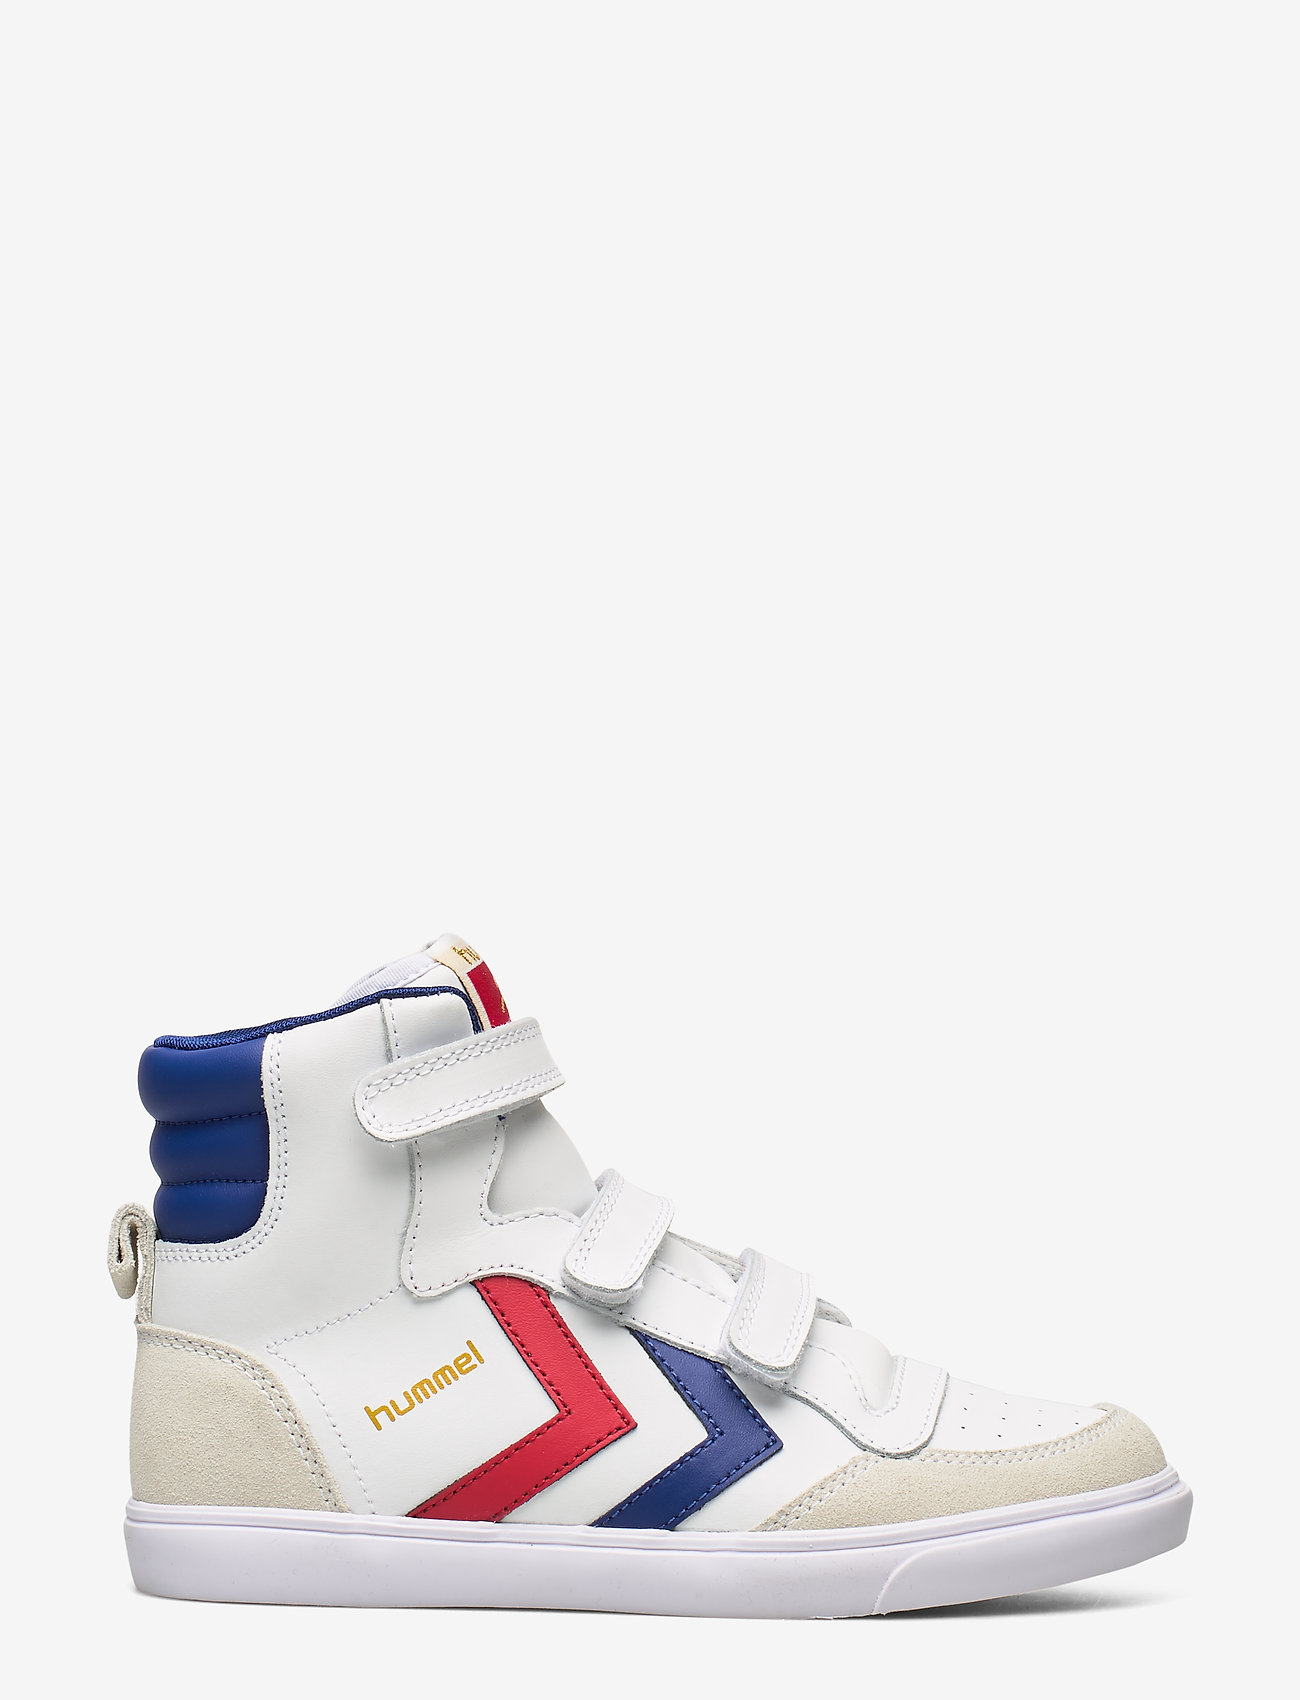 Hummel - HUMMEL STADIL JR LEATHER HIGH - sneakers - white/blue/red/gum